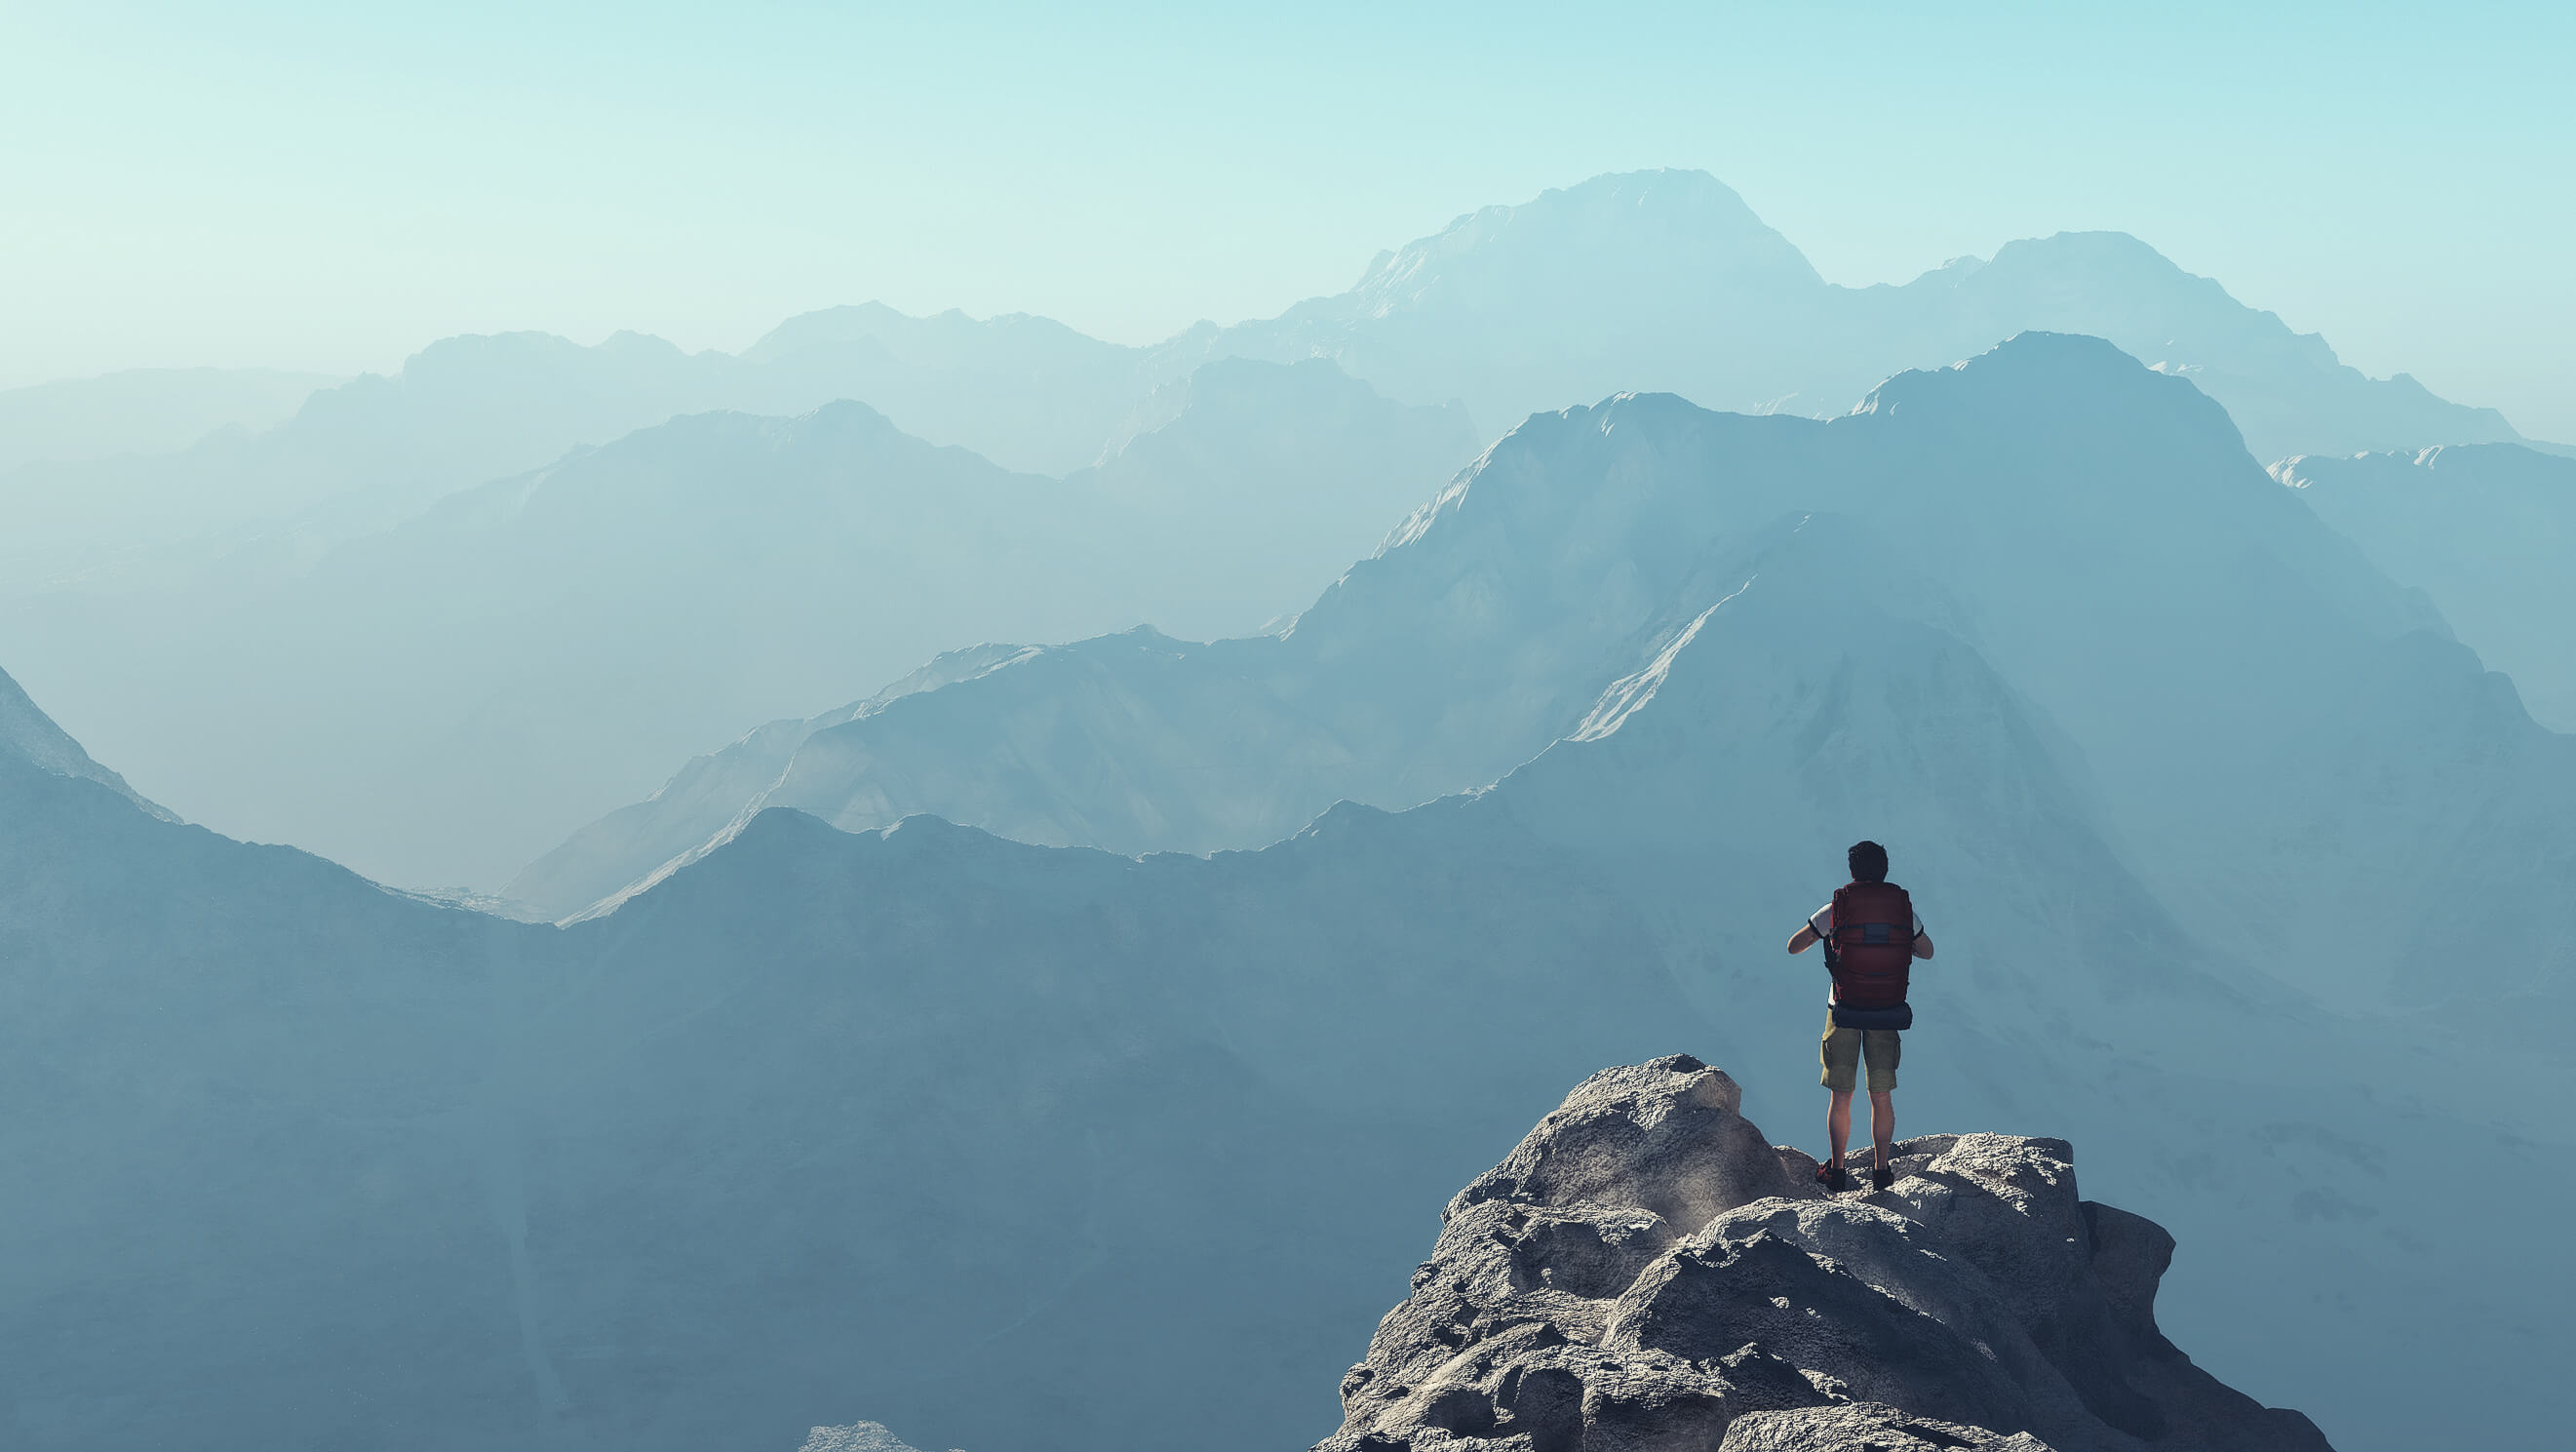 man on top of a mountain overlooking more vast mountains